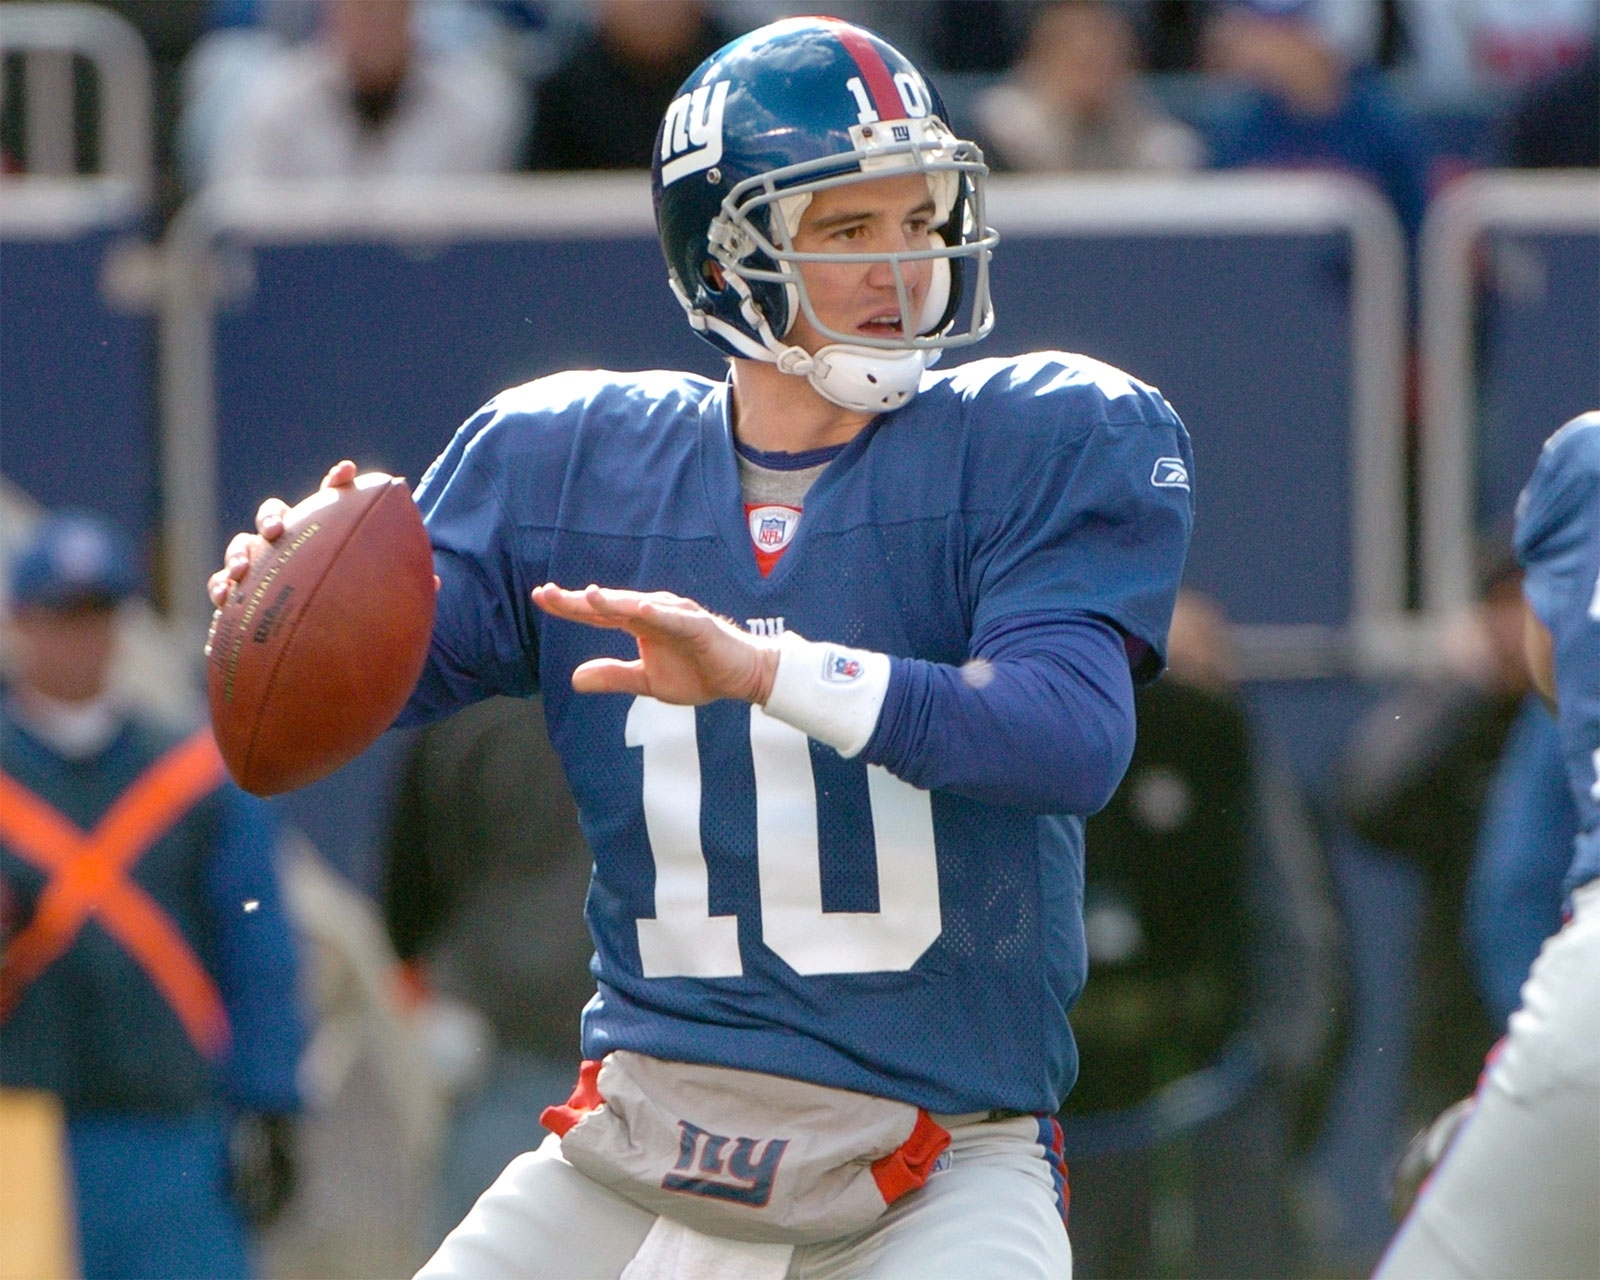 Eli Manning   Biography, Stats, & Facts   Britannica within New York Giants Nfl Championships 2008